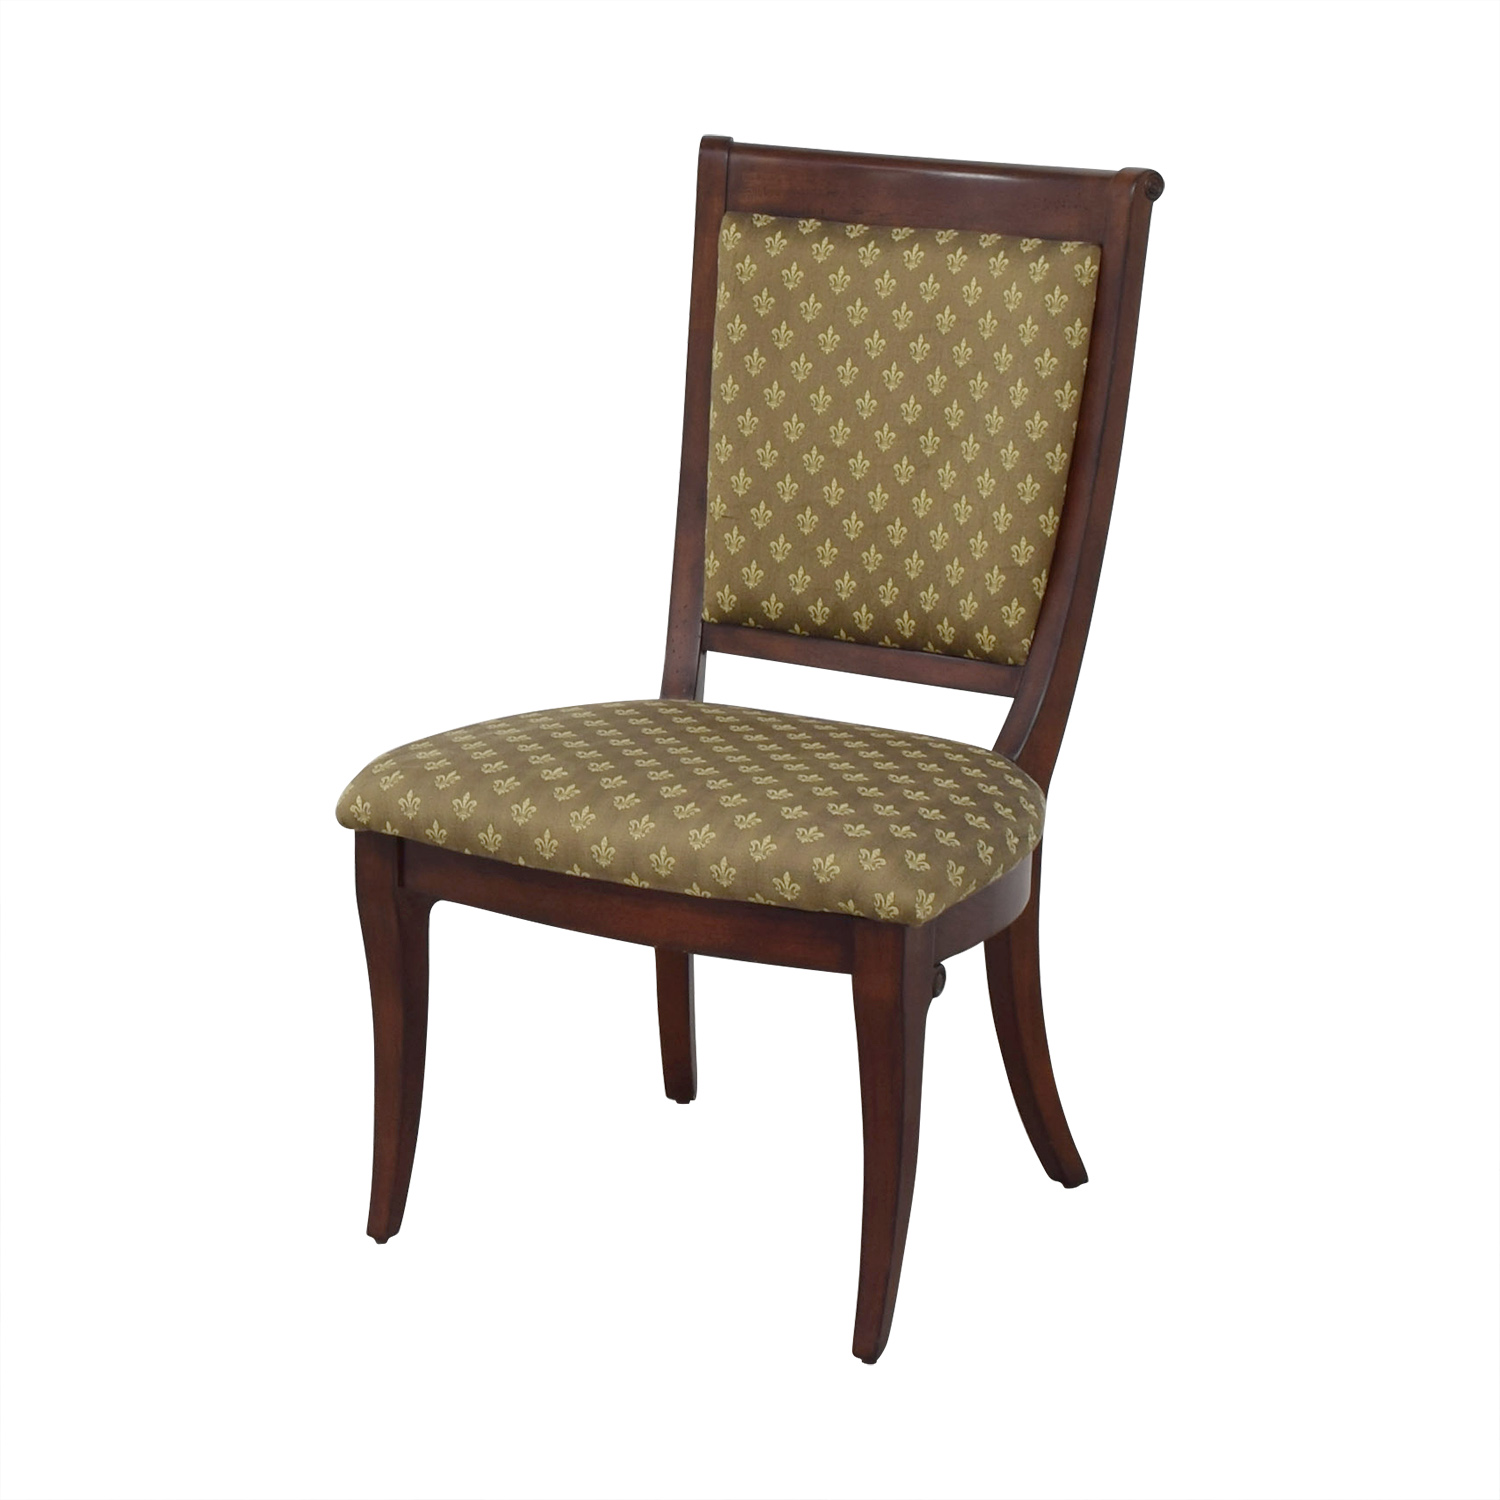 Bassett Furniture Bassett Furniture Upholstered Side Chairs on sale